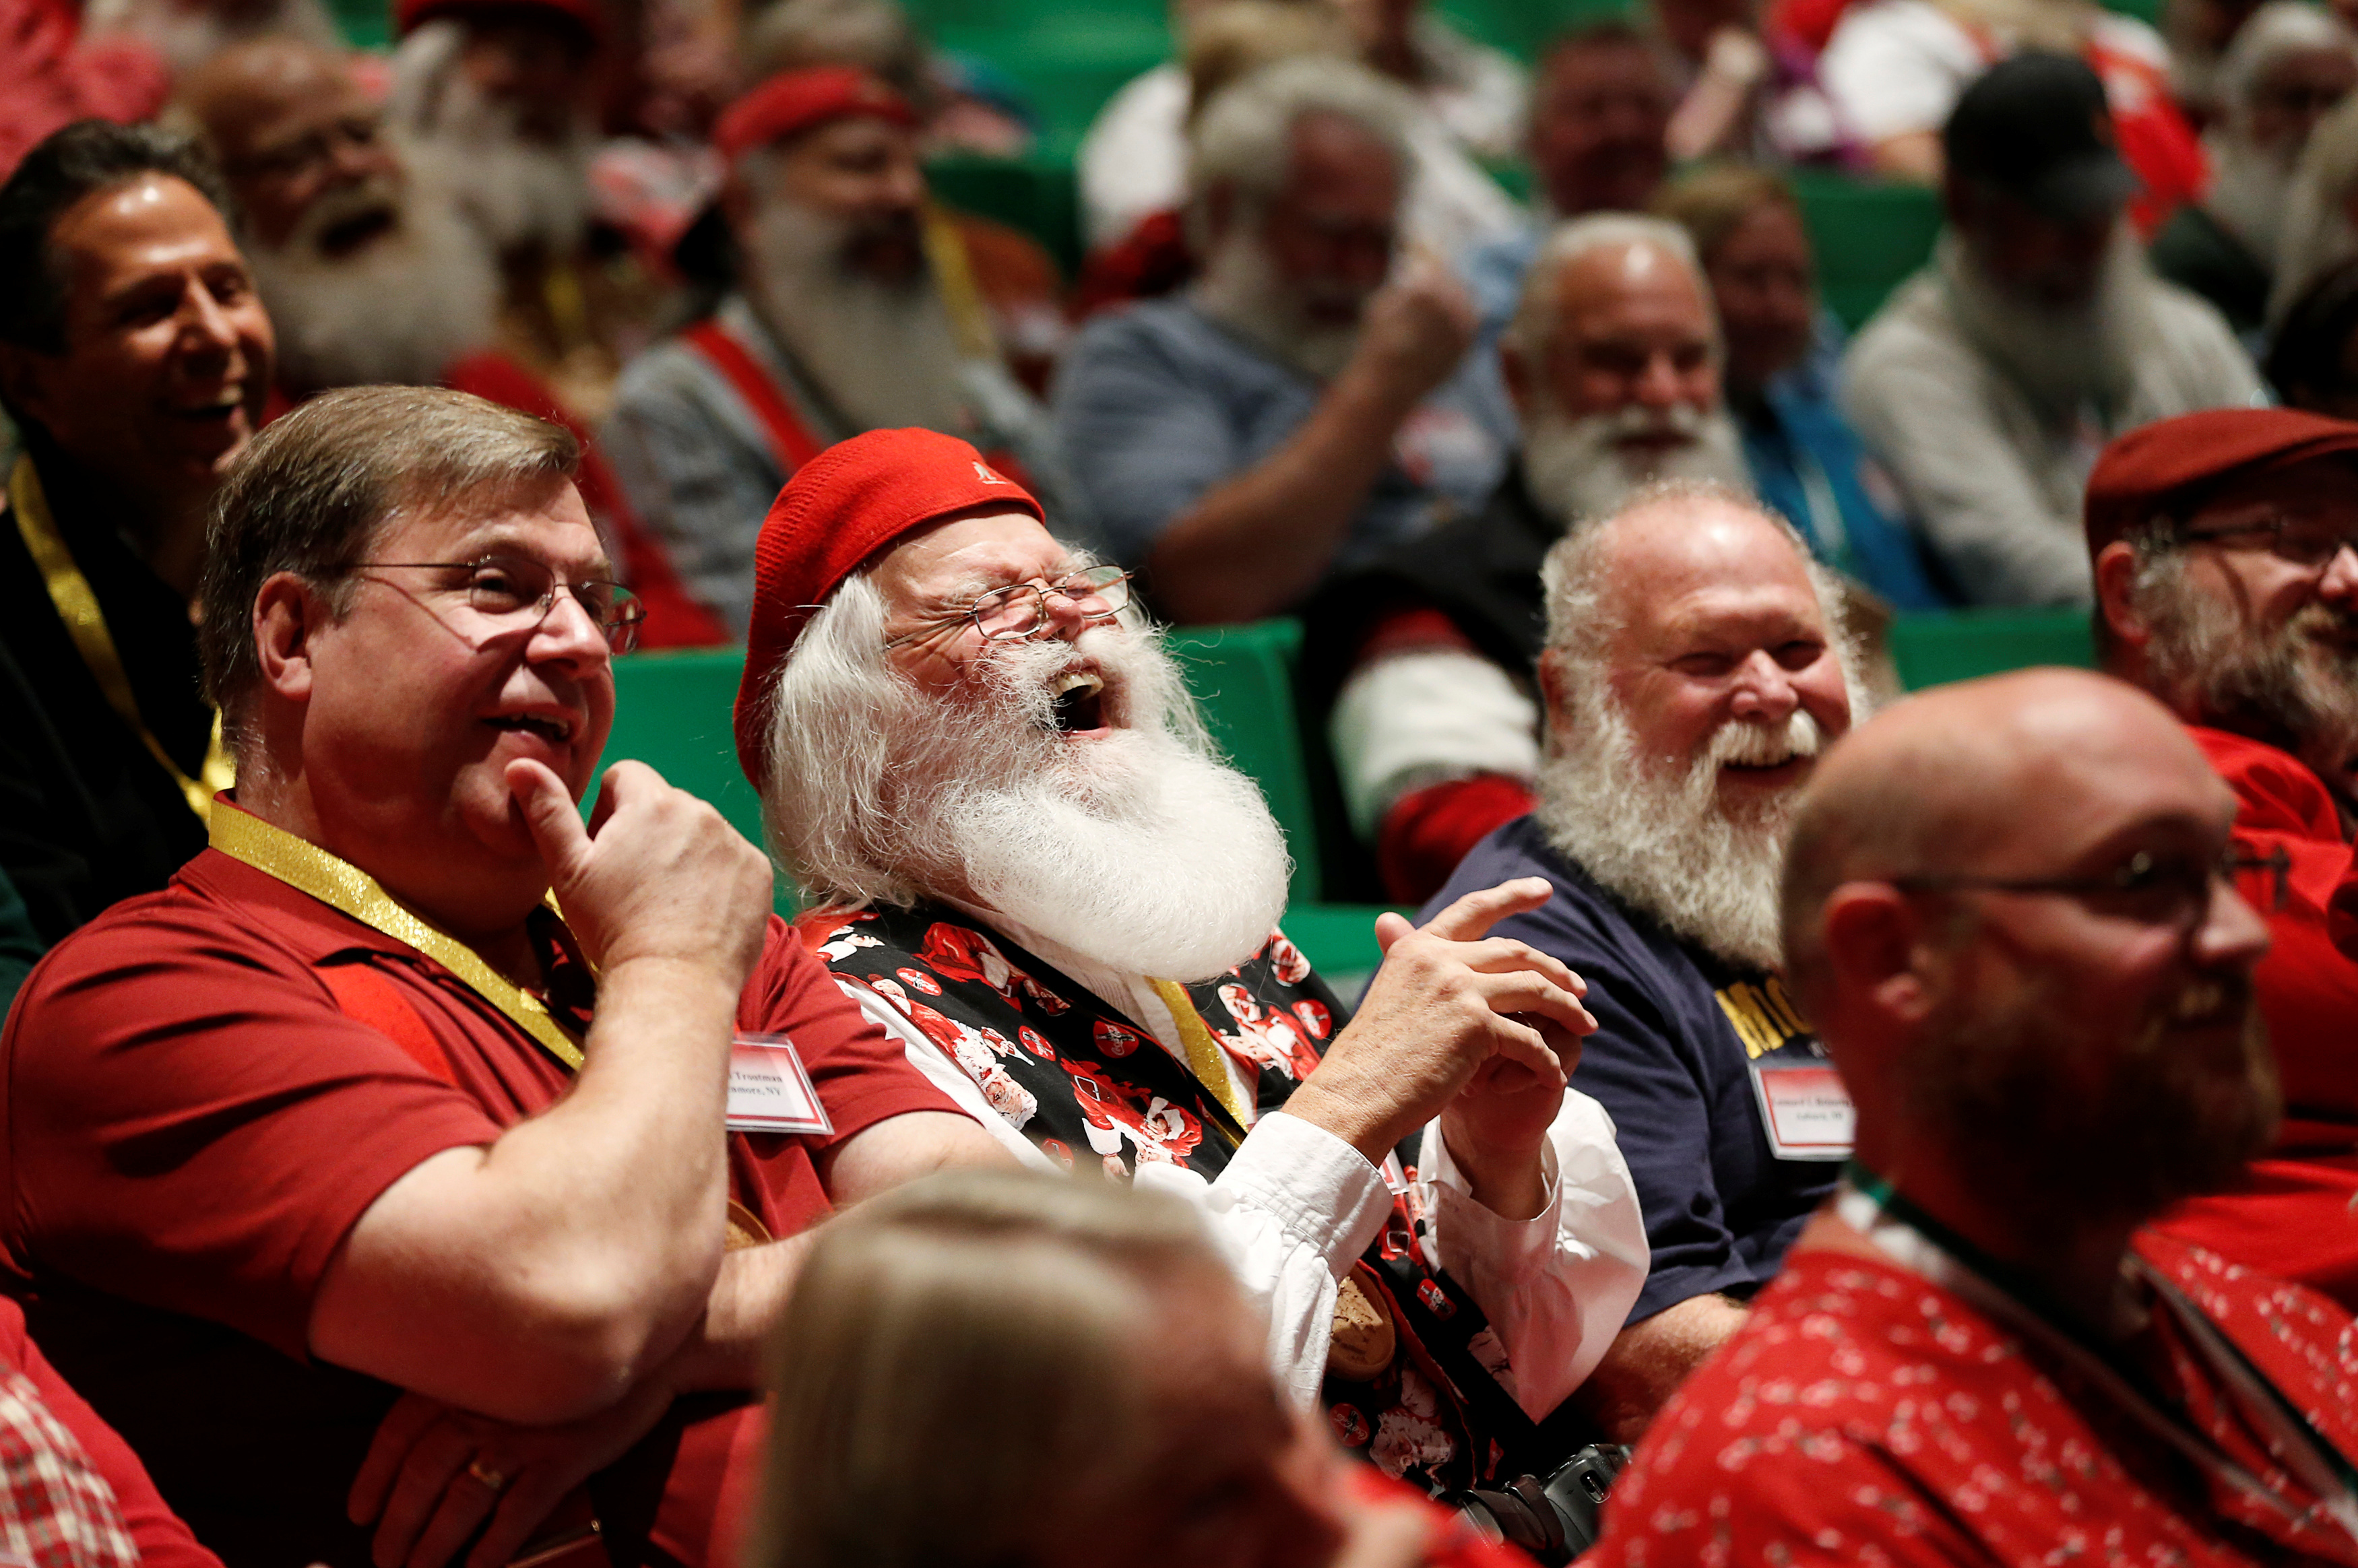 Santas laugh as they learn about Santa Spirit during class at the Charles W. Howard Santa Claus School in Midland, Michigan, Oct. 27, 2016.